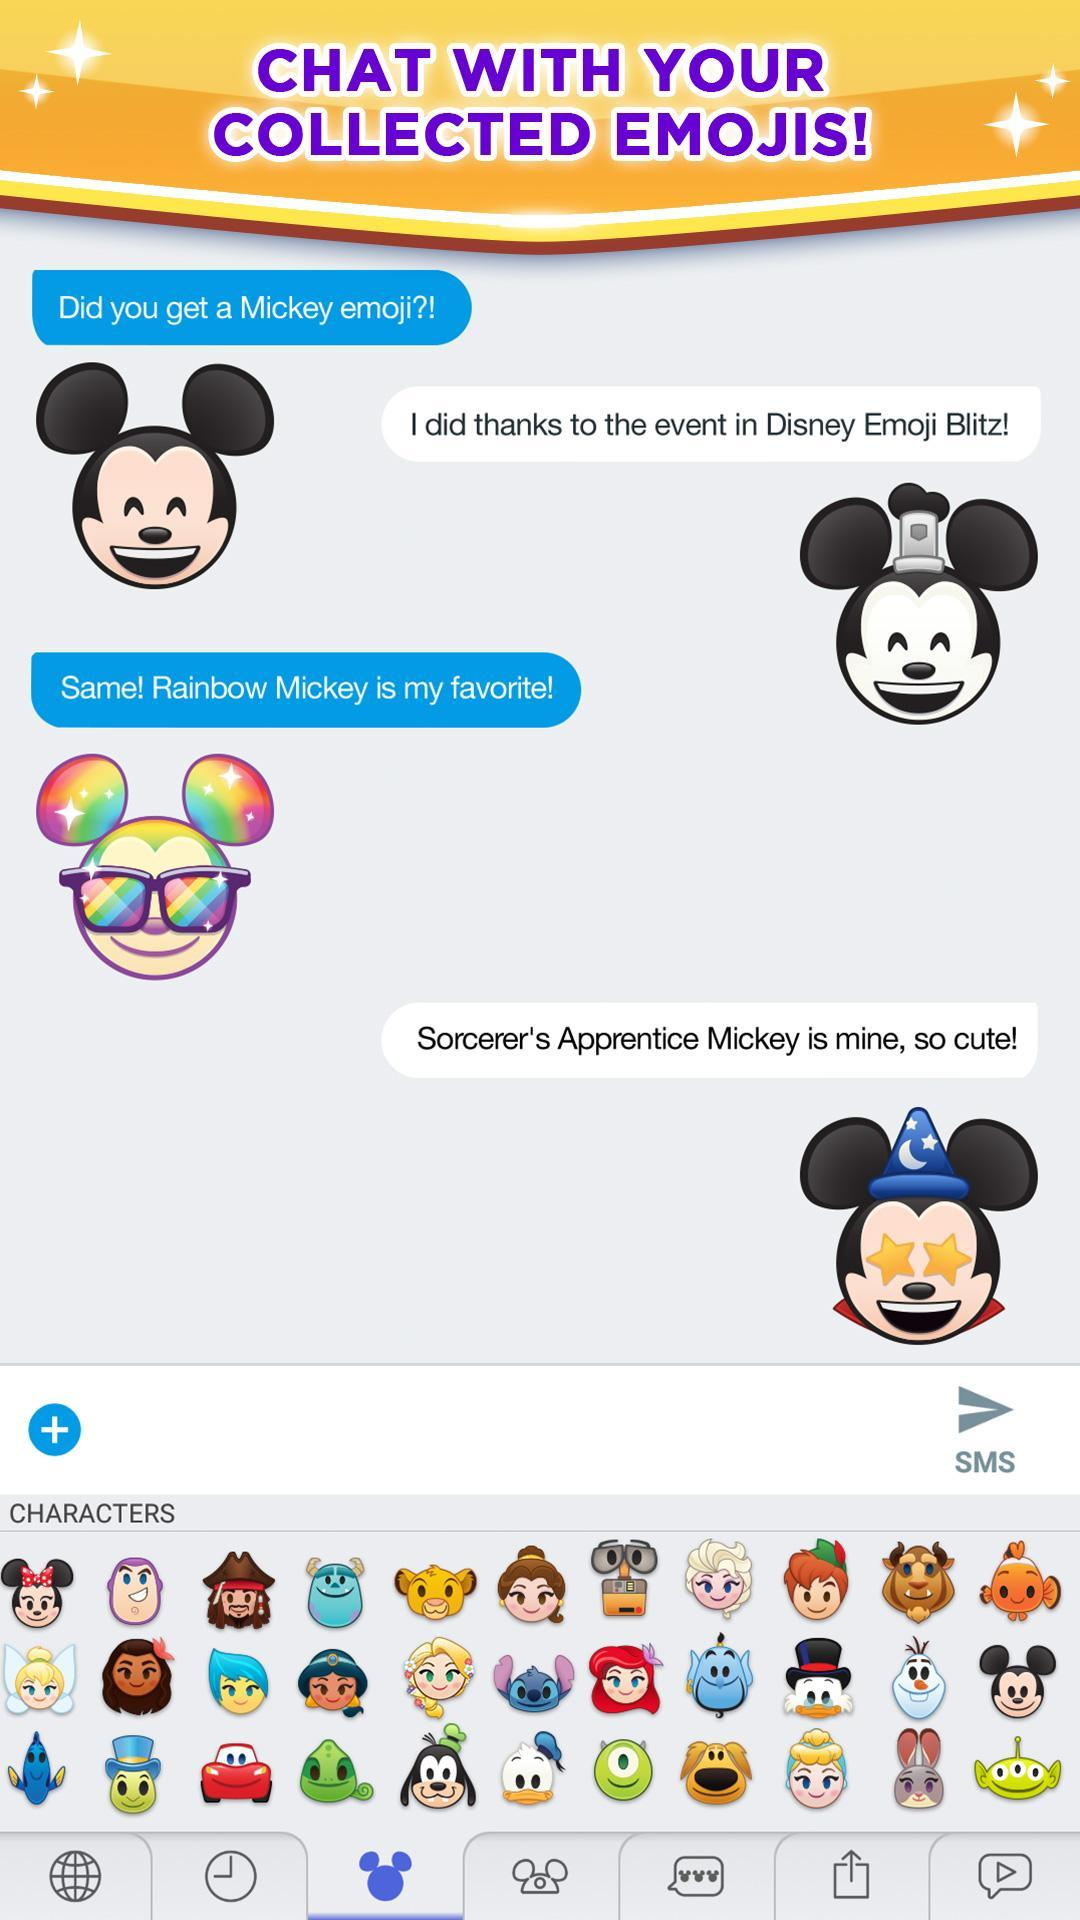 Disney Emoji Blitz For Android  Apk Download with Disney Emoji Blitz Events Calendar 2020